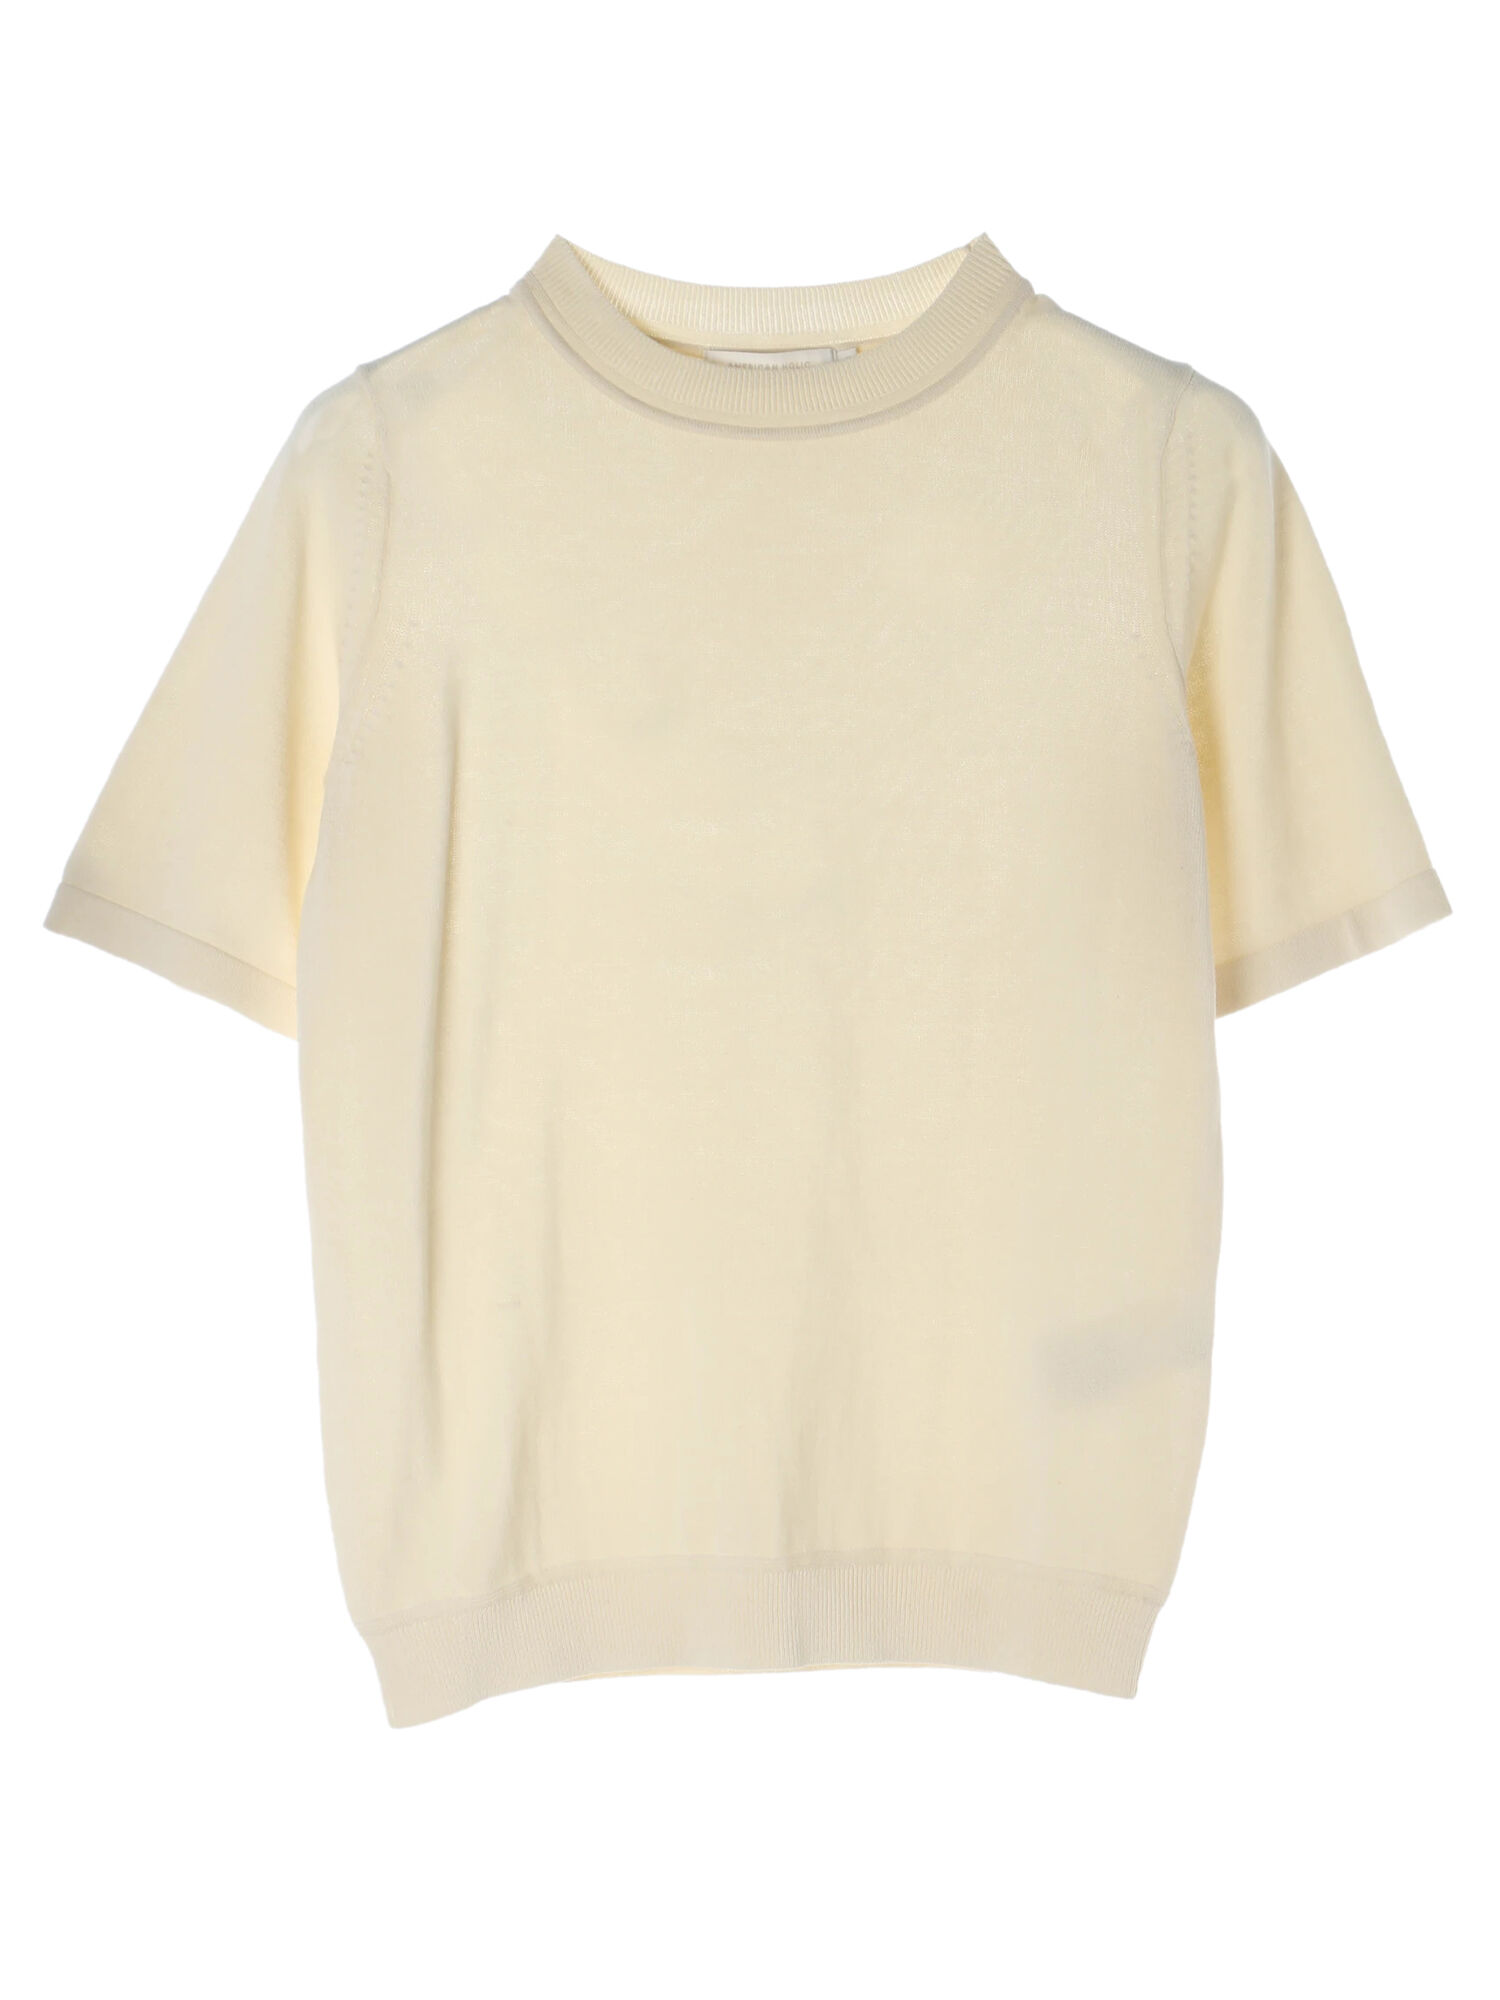 American Holic Emily Top - Ivory